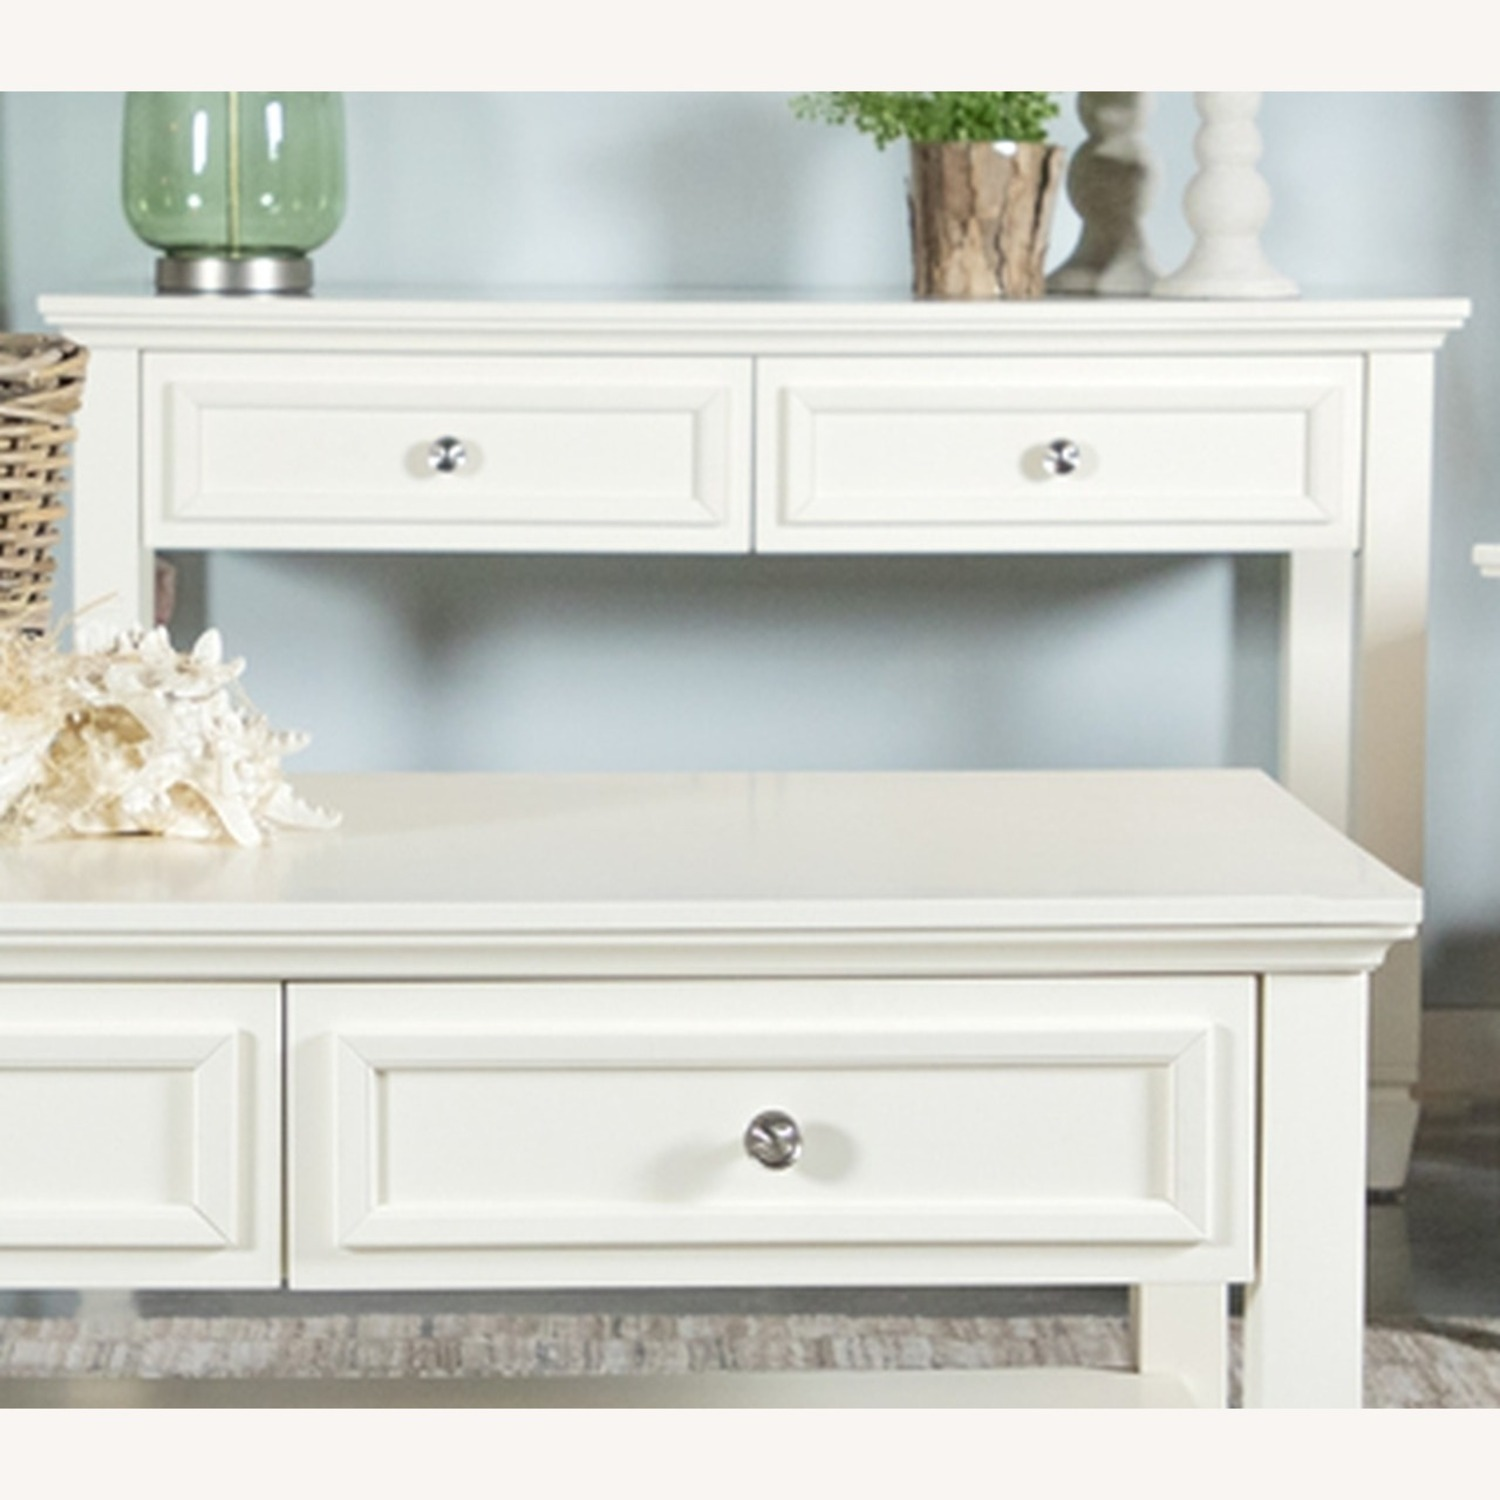 Sofa Table In White/Brushed Nickel - image-0